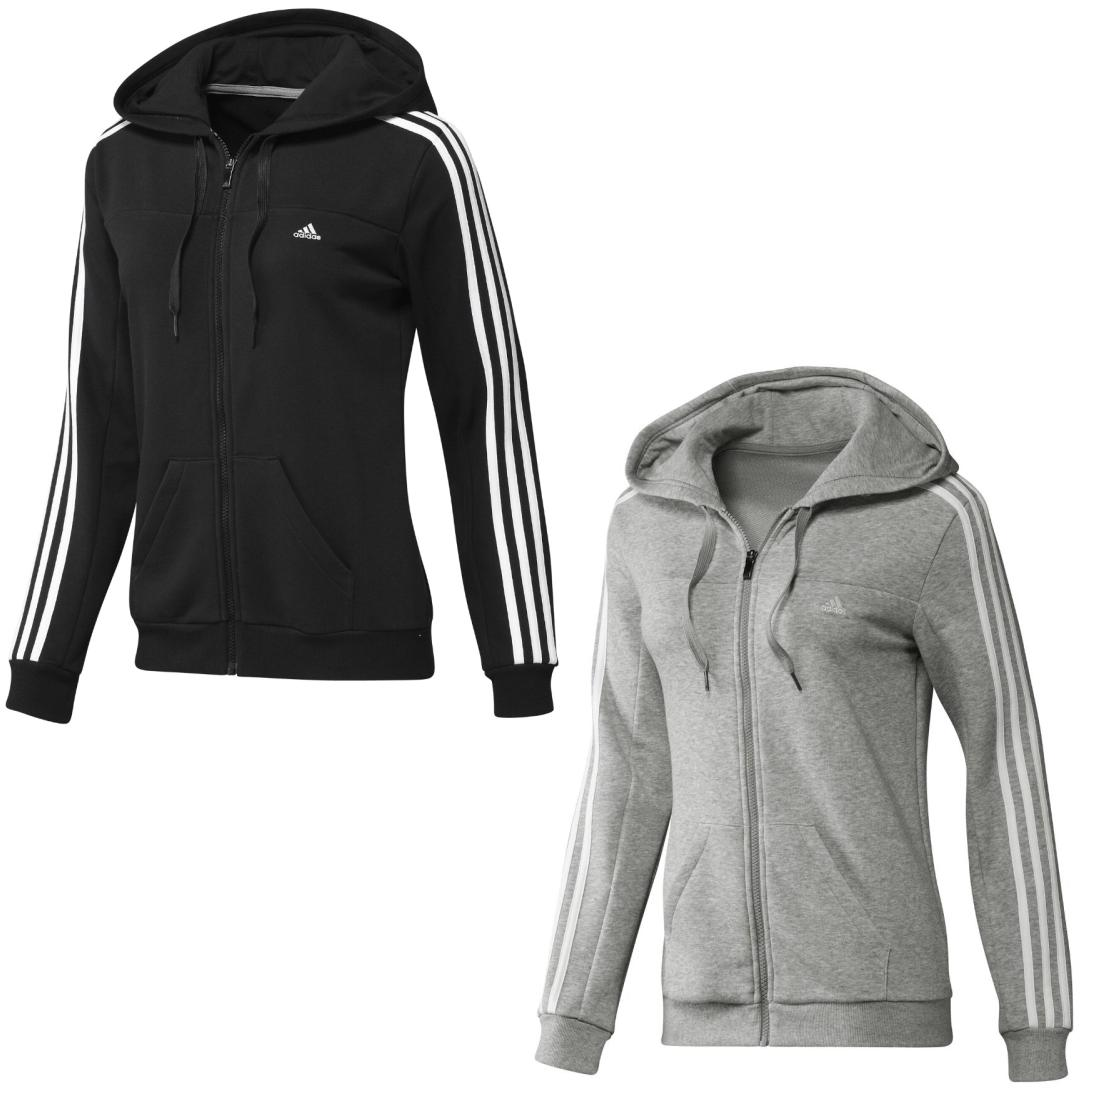 adidas essentials 3 stripes hooded jacket x21804. Black Bedroom Furniture Sets. Home Design Ideas